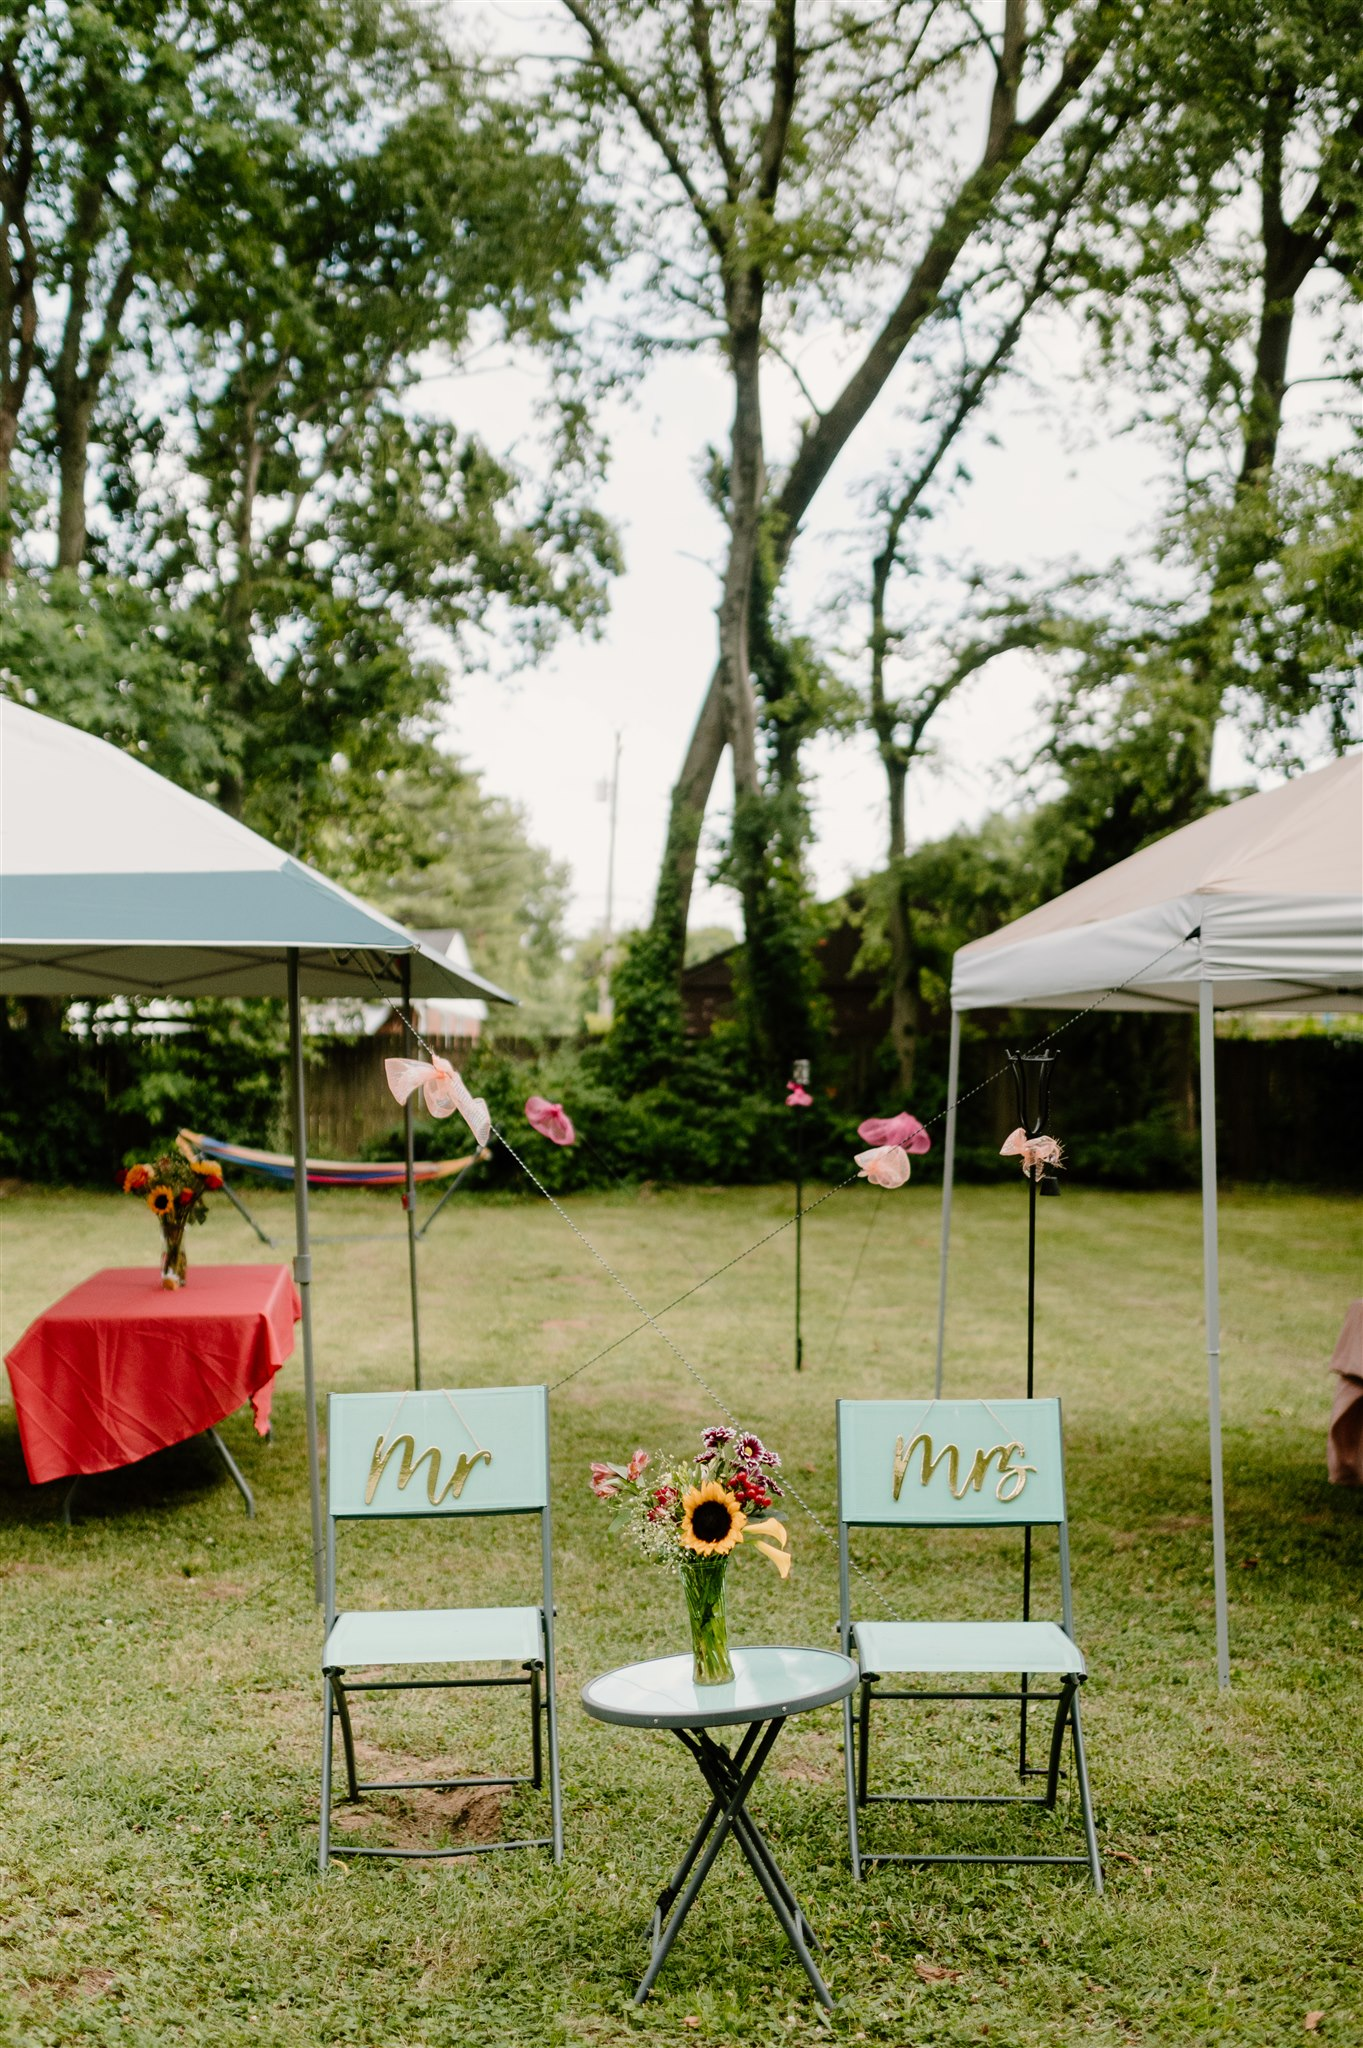 Mr. and Mrs. wedding chairs